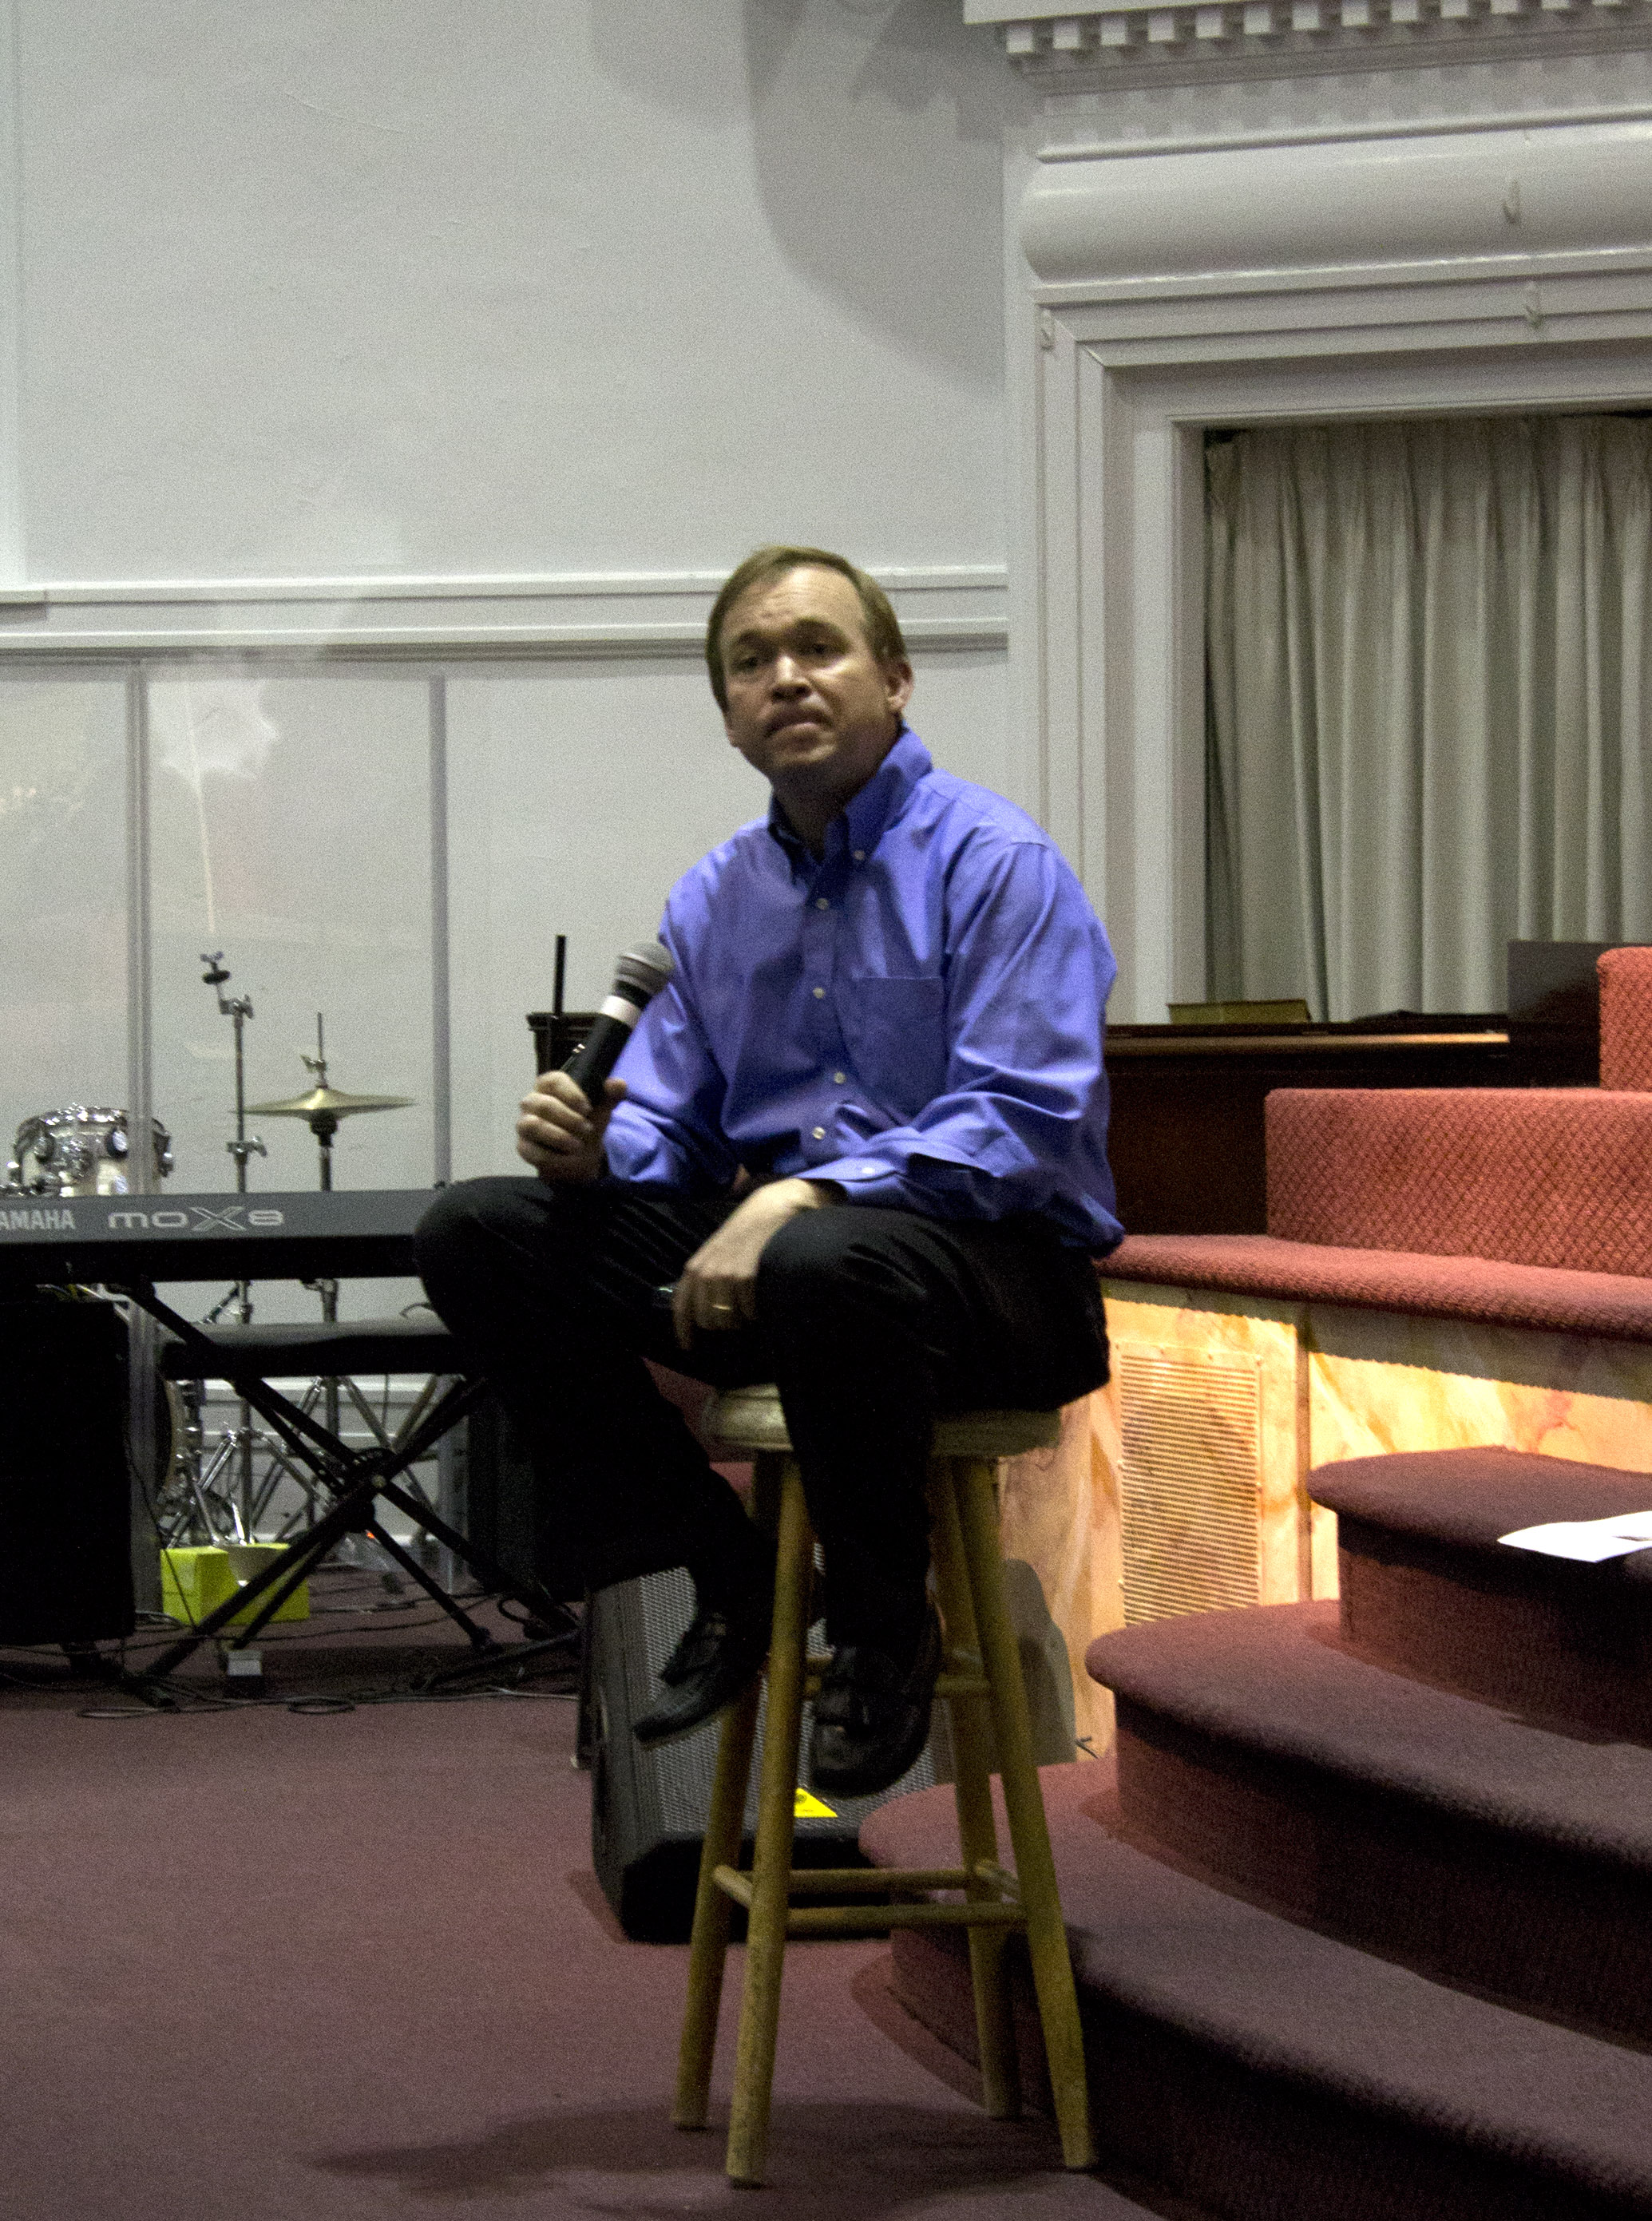 Rep. Mulvaney speaks to audience at a town hall meeting